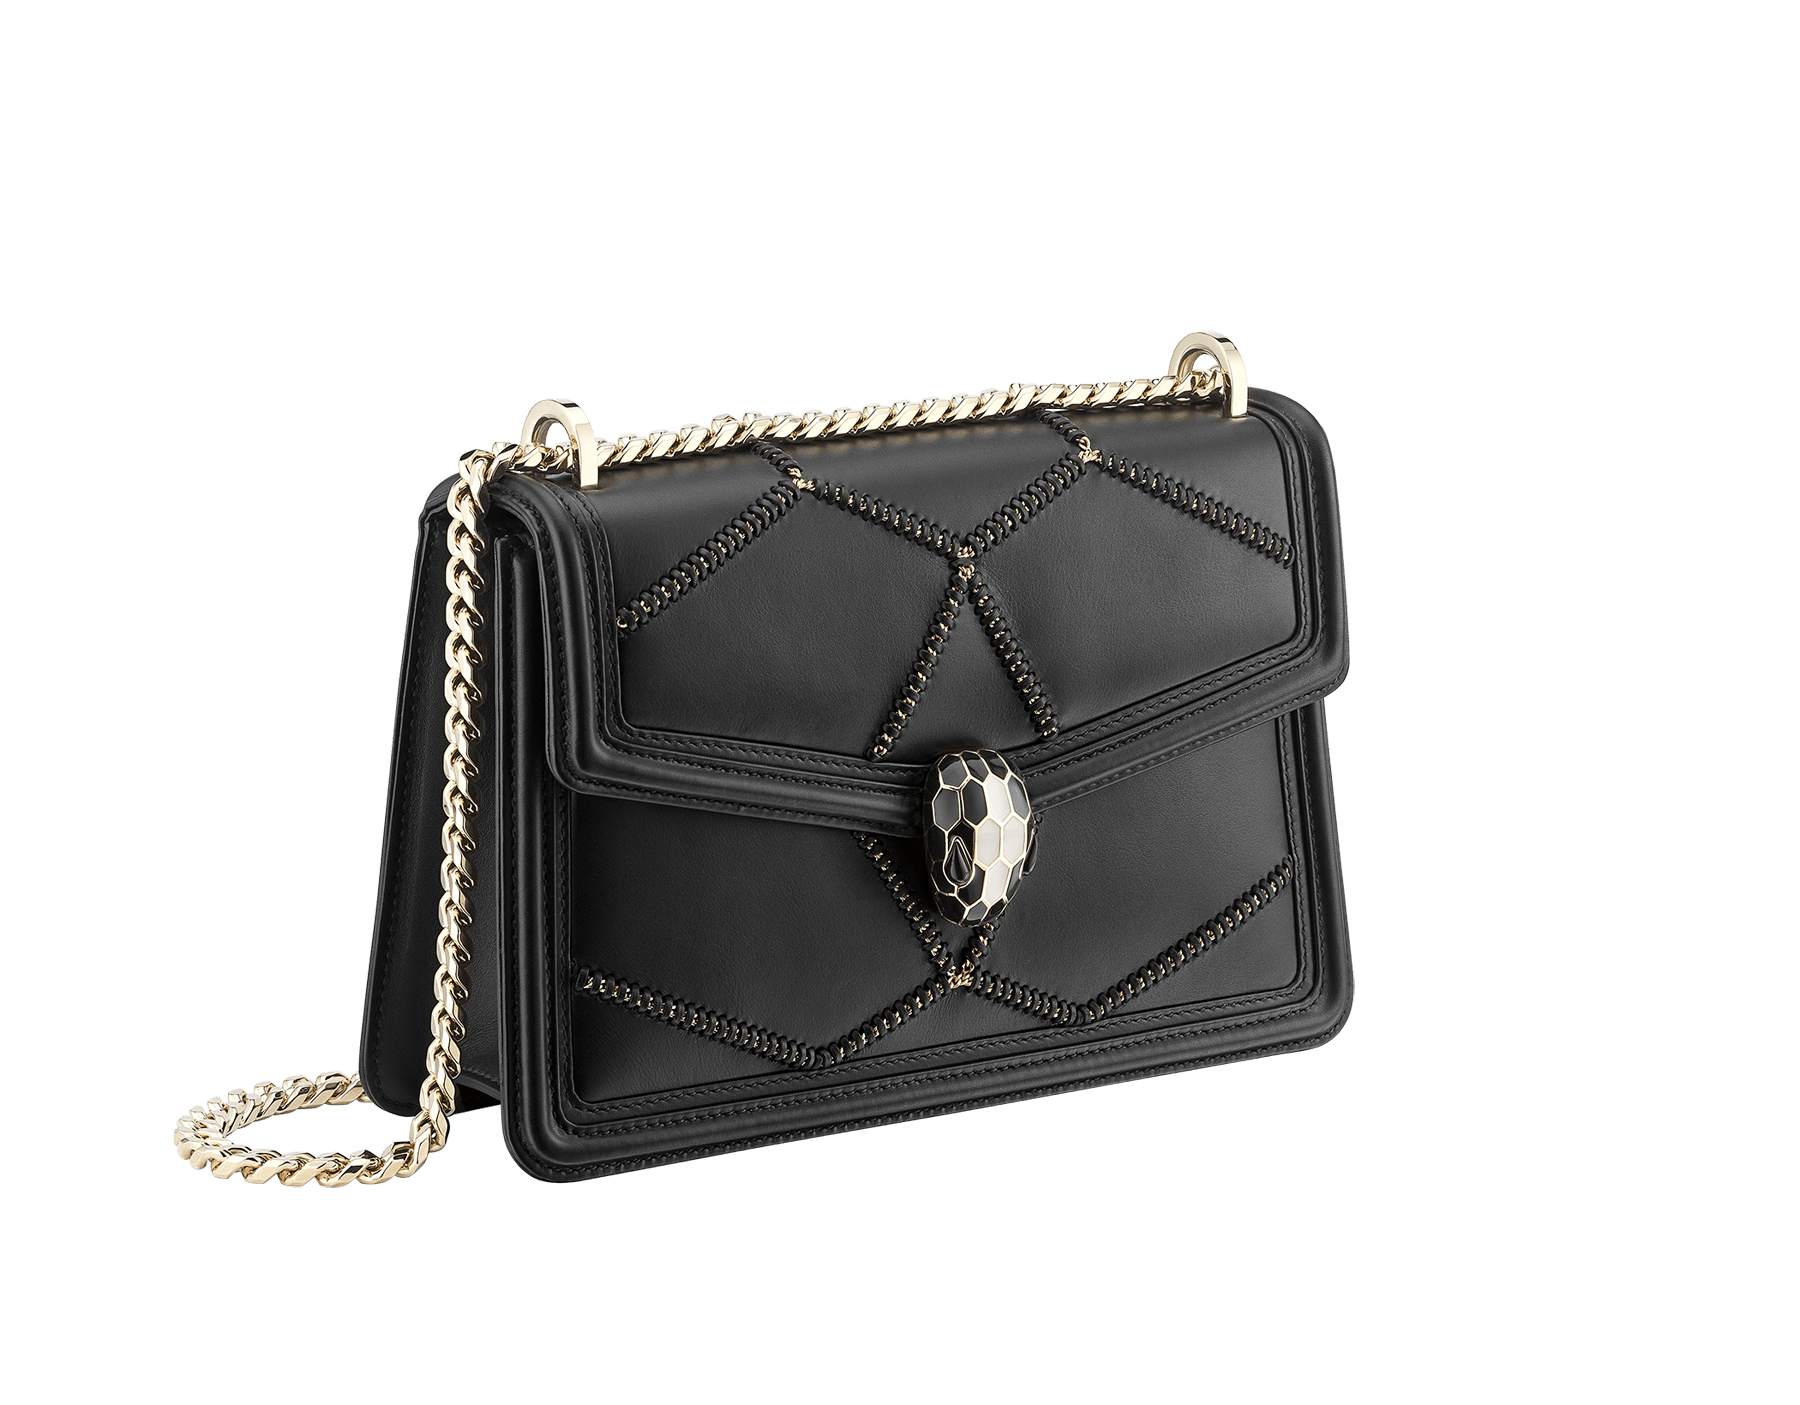 Serpenti Diamond Blast shoulder bag in white agate smooth calf leather with geometric chain motif in light gold finishing.Snakehead closure in light gold plated brass decorated with black and white enamel, and black onyx eyes. 922-NGC image 2